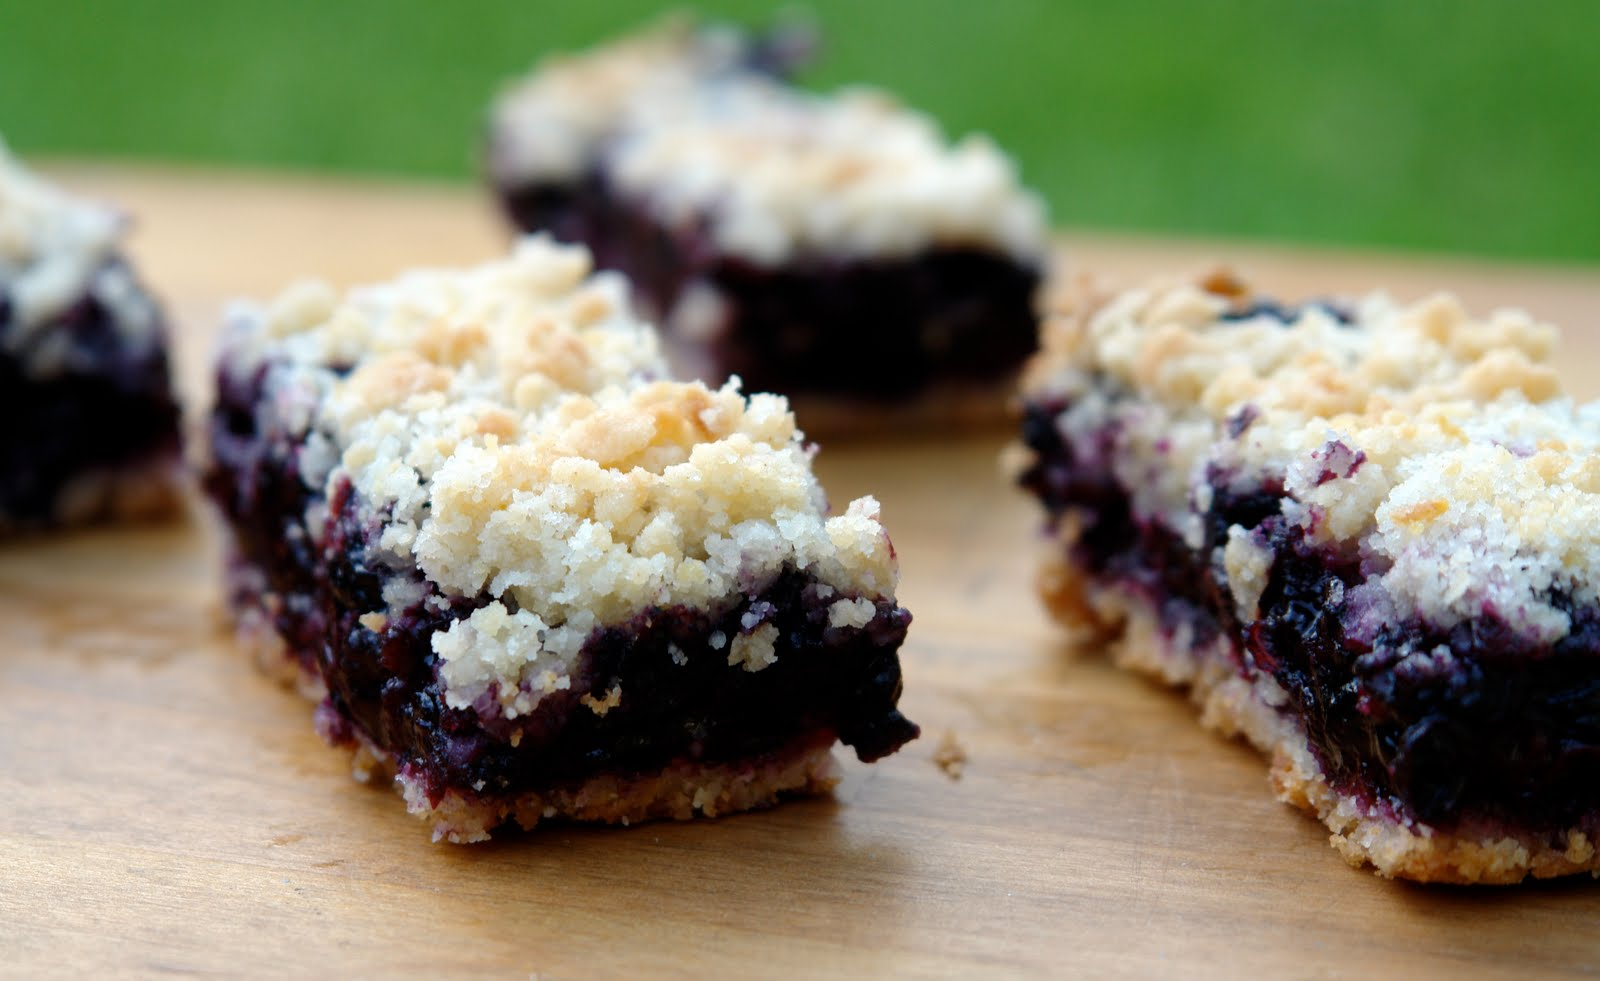 Bakes: Lemon Blueberry Crumb Bars